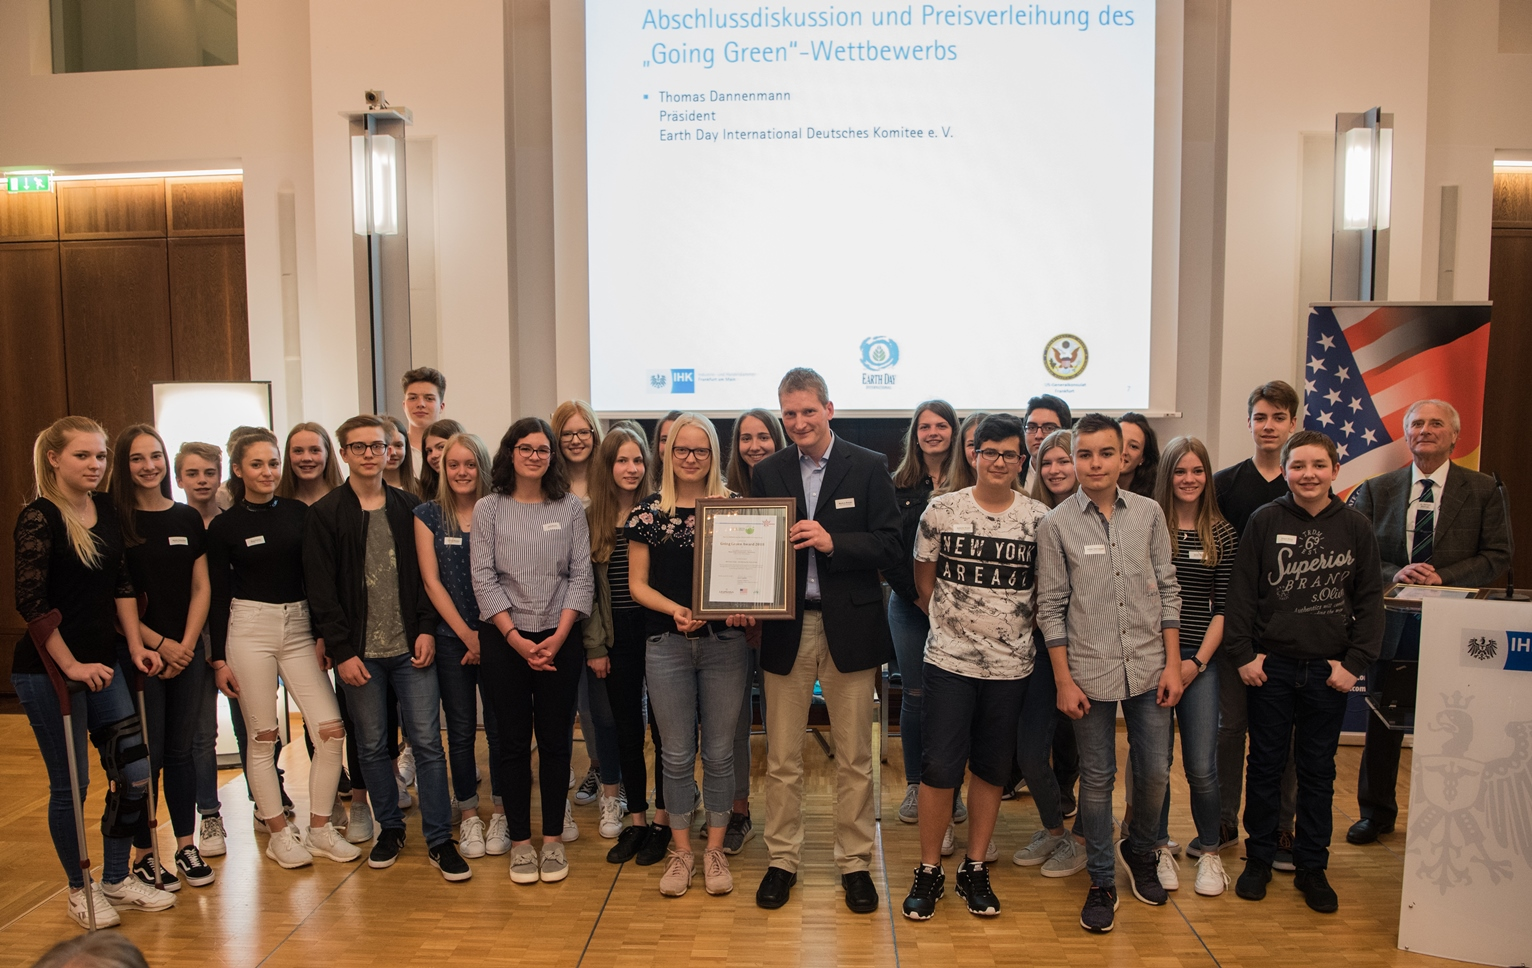 Going Green winners 2018 from Montabaur